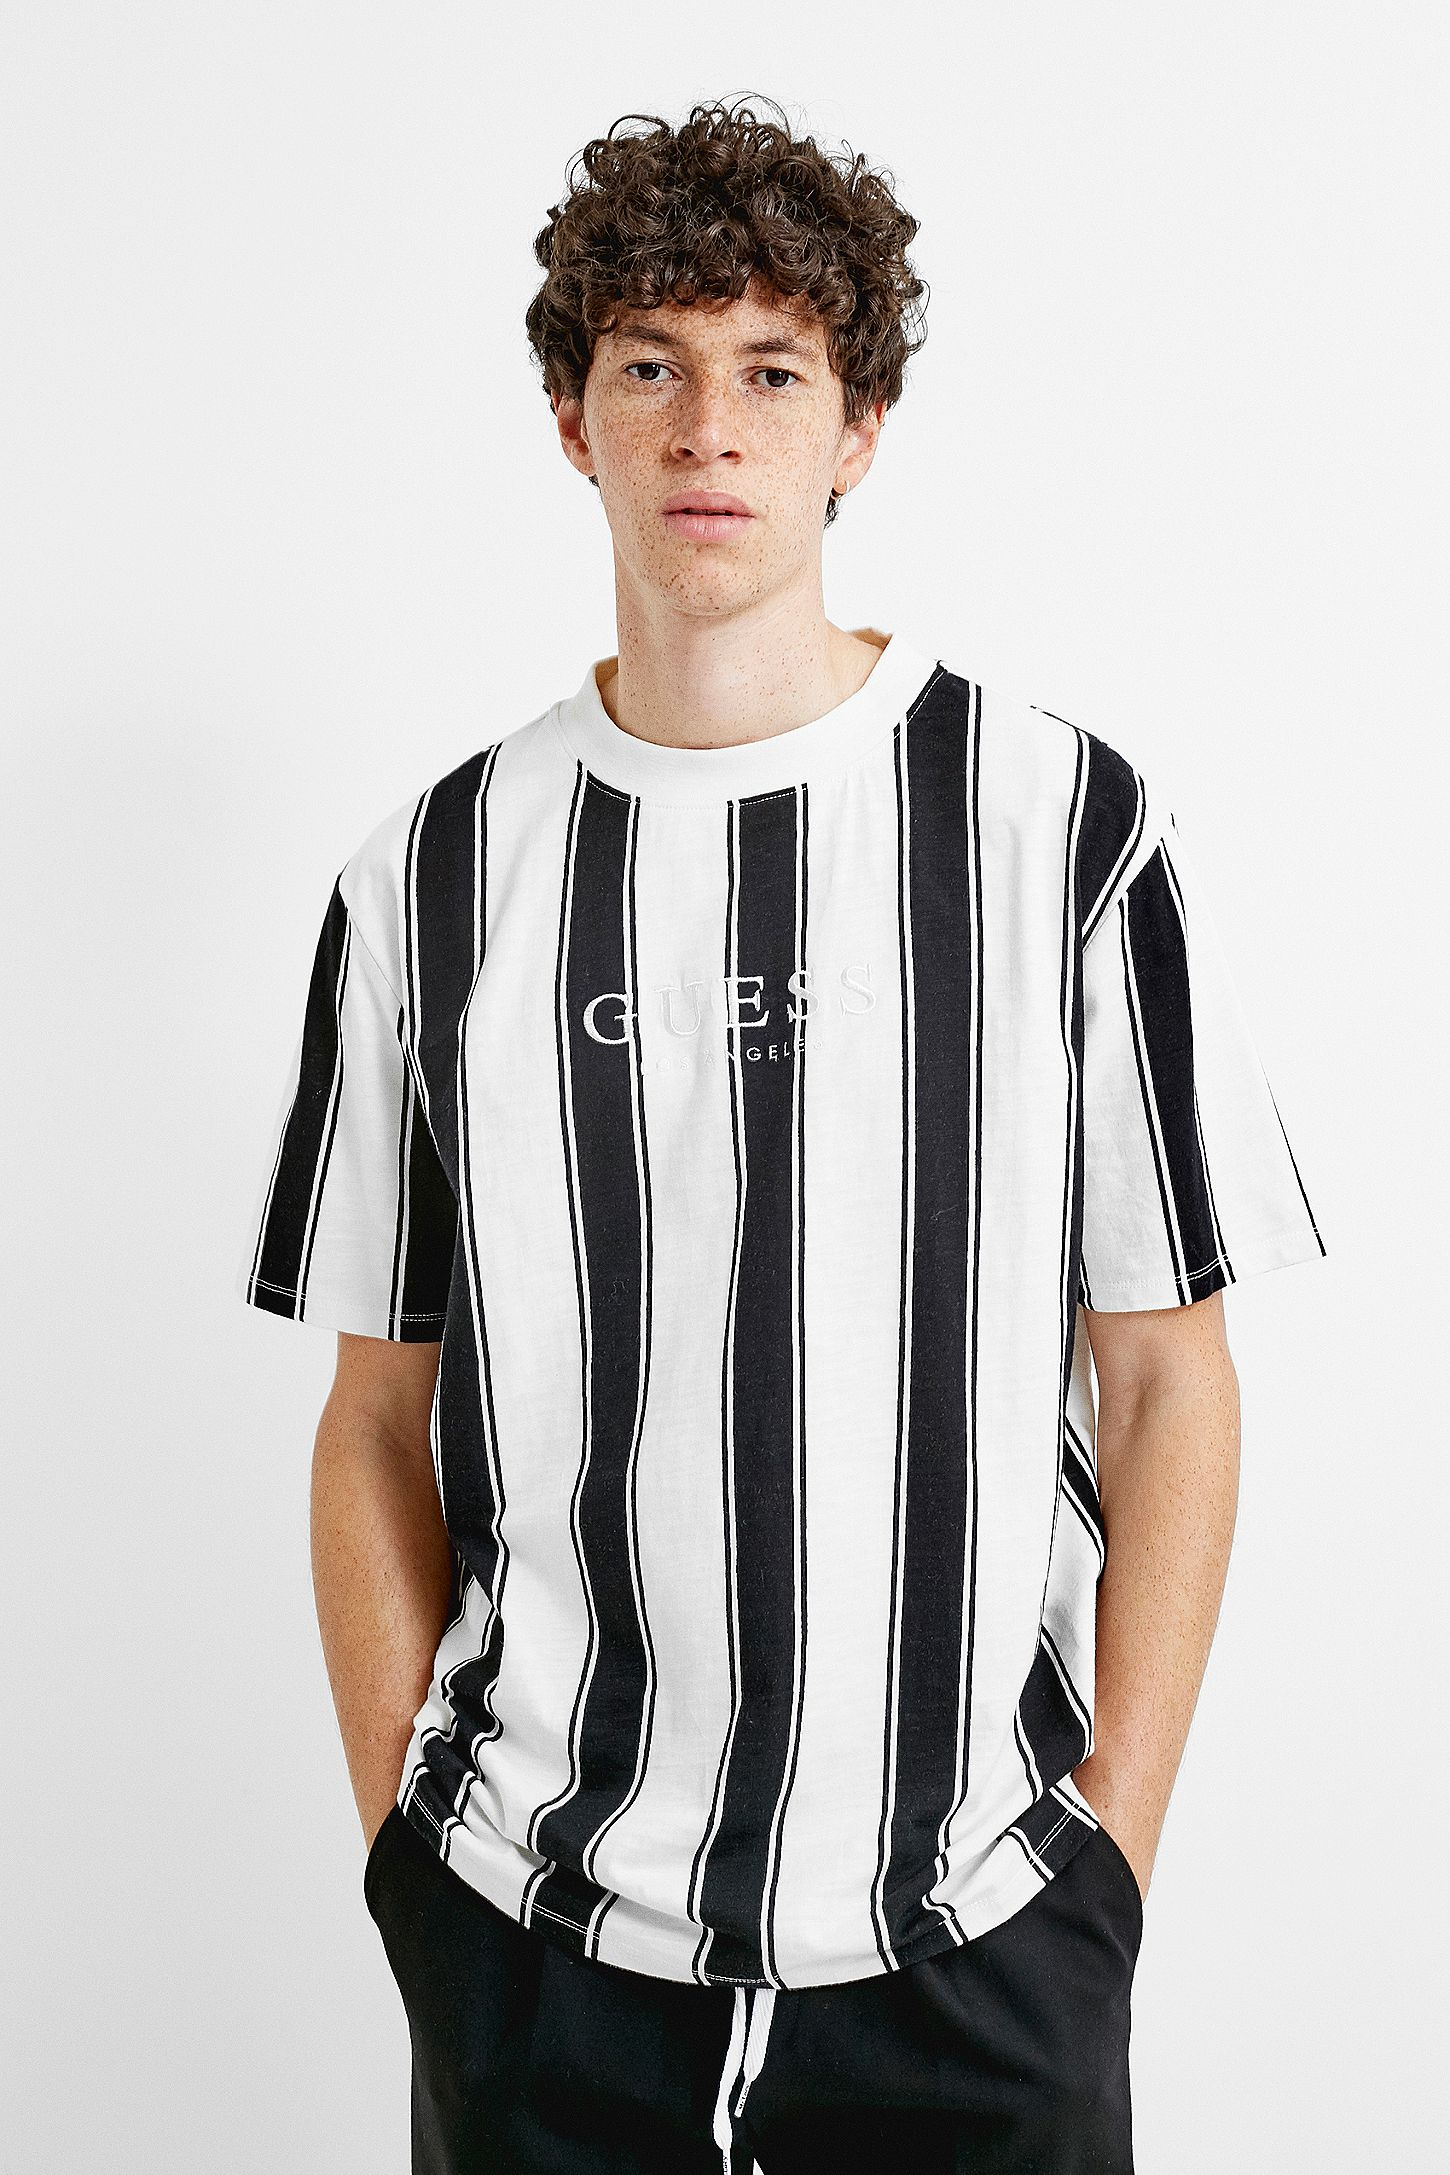 Neues Produkt Sonderpreis für große sorten GUESS UO Exclusive Walden Black and White Stripe T-Shirt